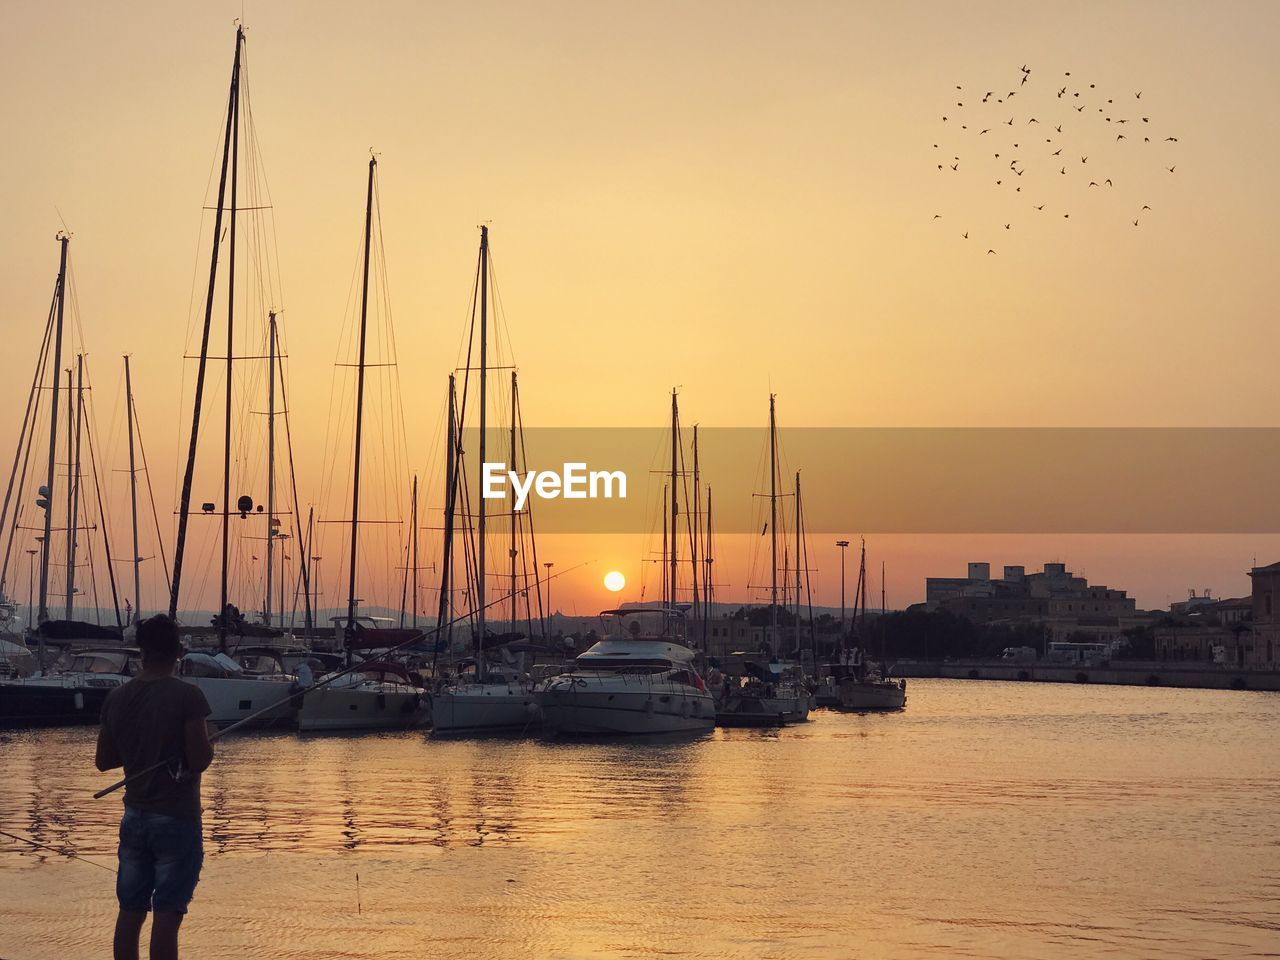 sunset, sky, water, nautical vessel, transportation, mode of transportation, nature, orange color, sailboat, mast, pole, beauty in nature, waterfront, sea, moored, silhouette, scenics - nature, bird, outdoors, yacht, marina